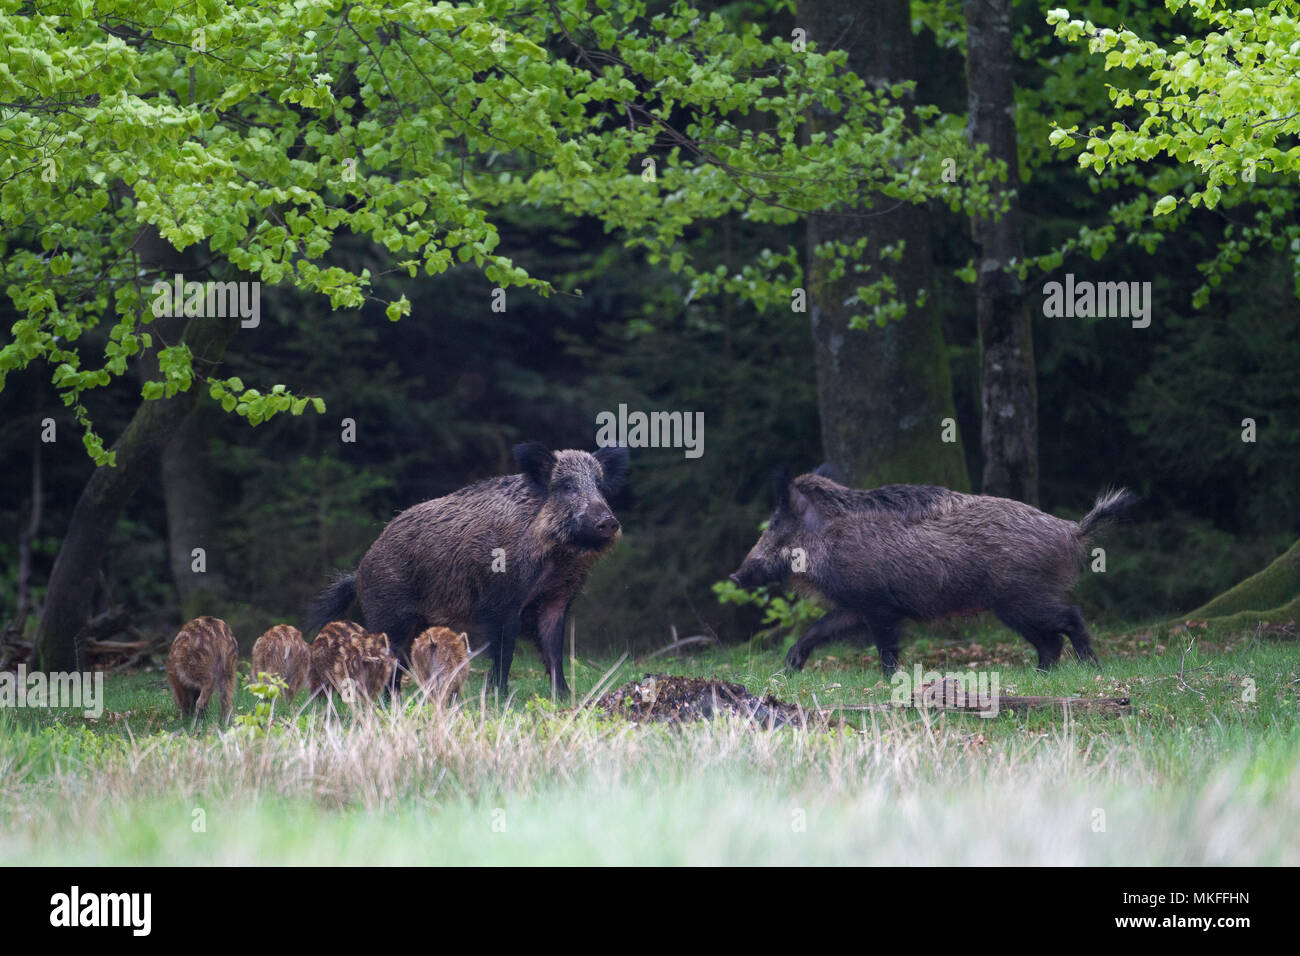 Wild boar (Sus scrofa) adults and piglets in a clearing, Ardennes, Belgium - Stock Image